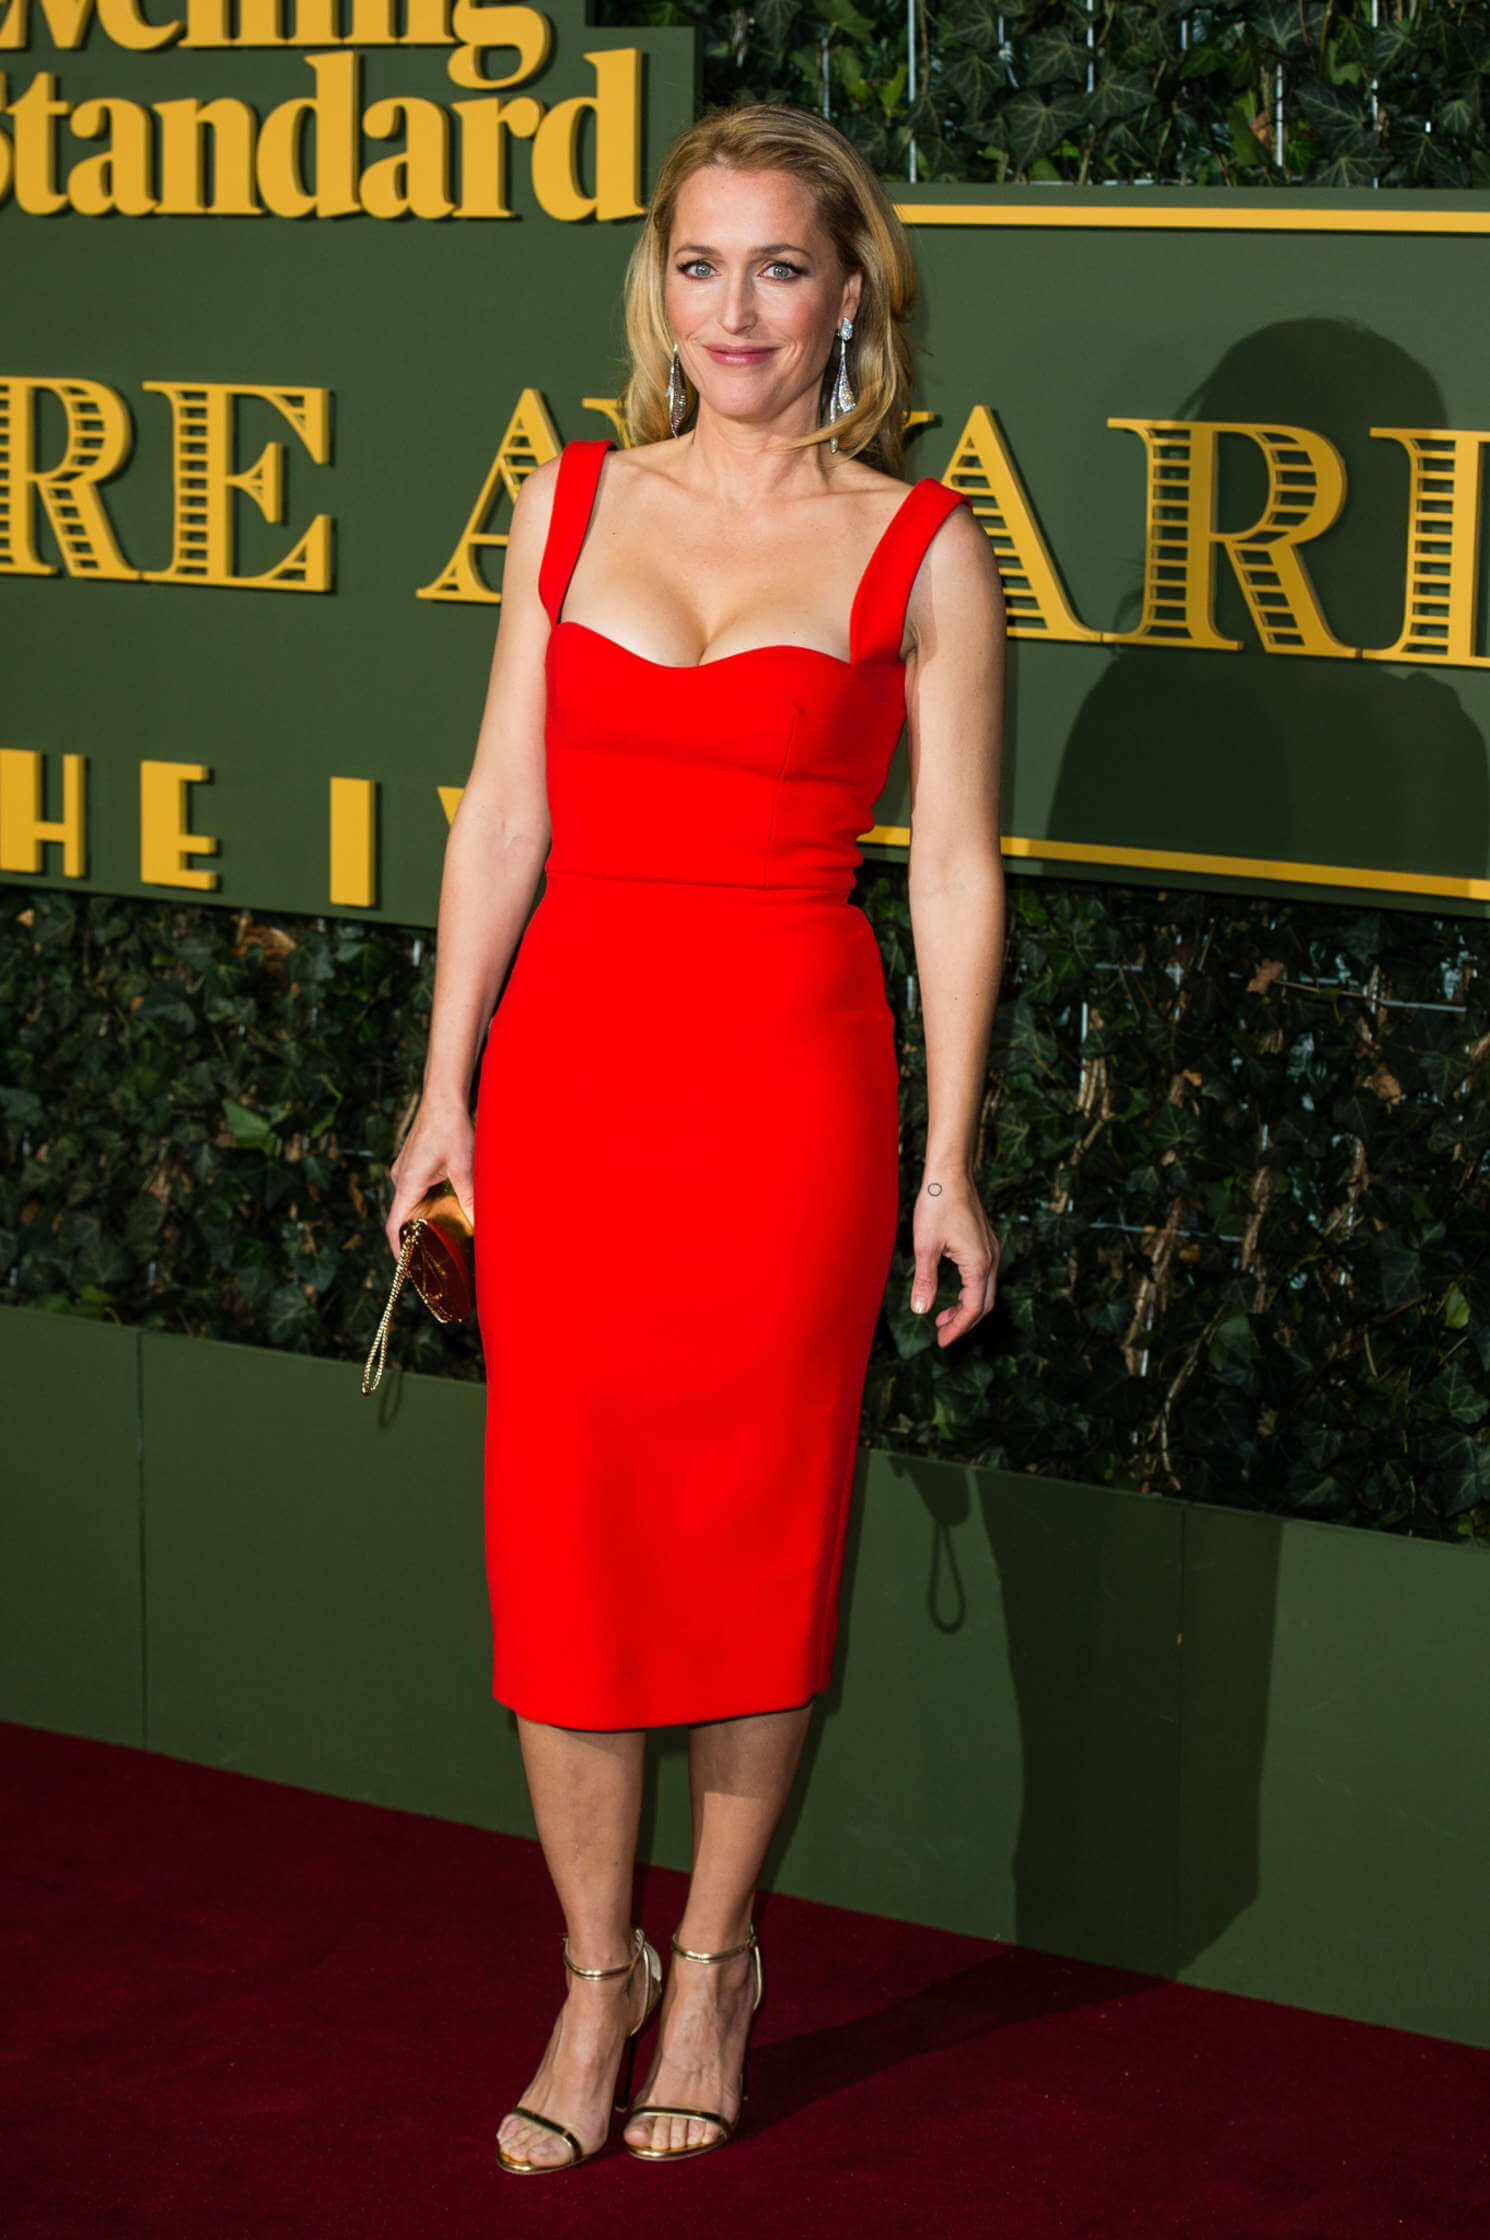 gillian anderson red dress